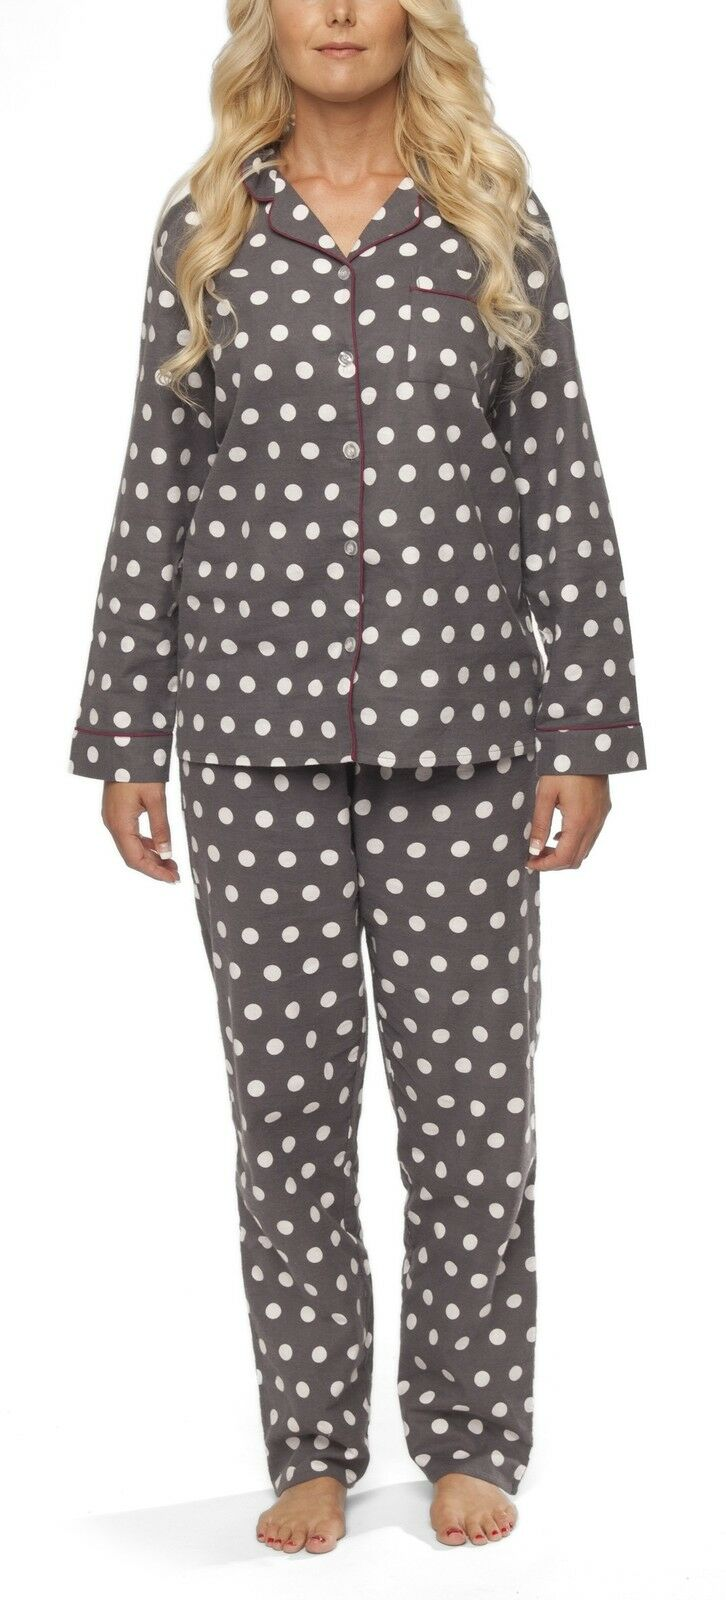 damen flanell schlafanzug pyjama nachtw sche baumwolle. Black Bedroom Furniture Sets. Home Design Ideas